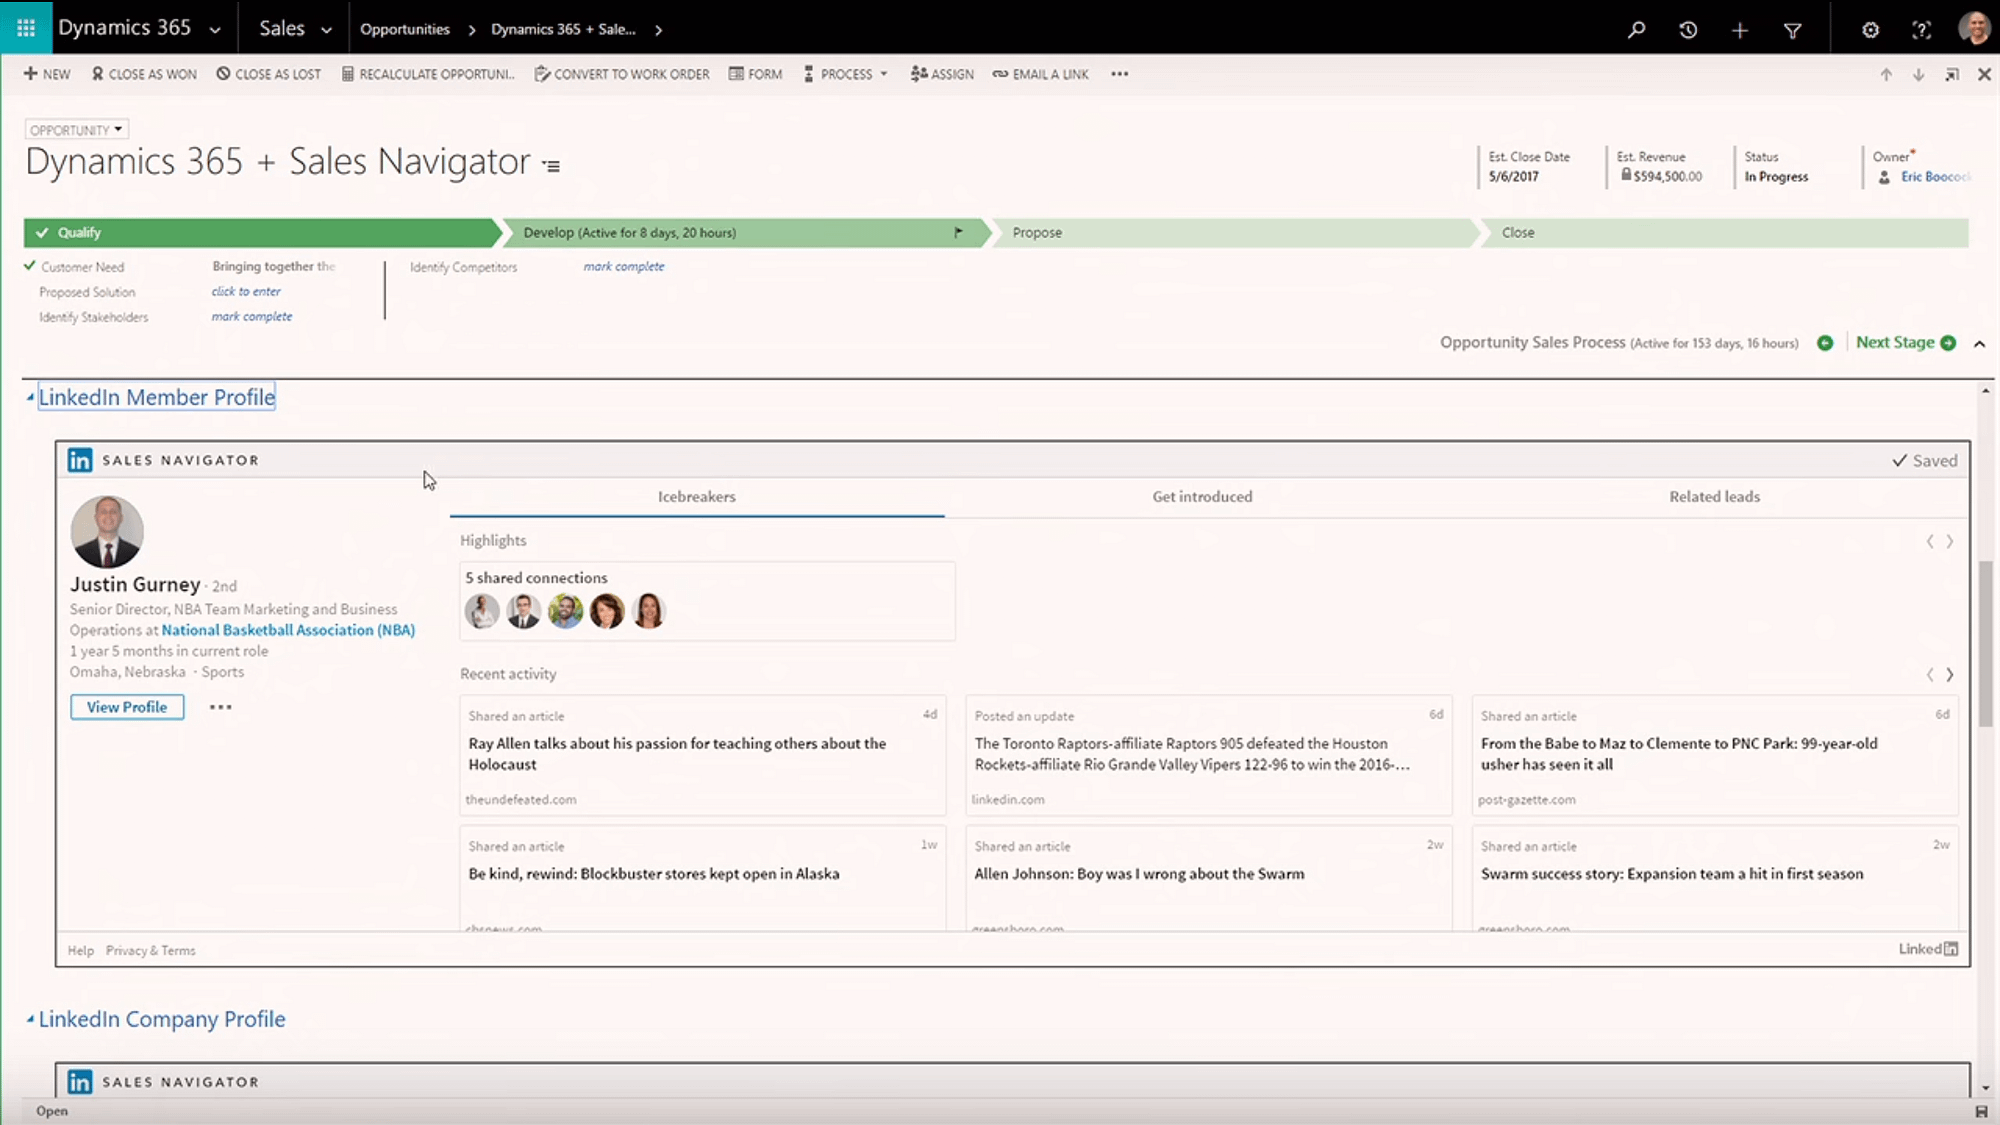 The Dynamics 365 July 2017 9.0 Update - Dynamics 365 and Sales Navigator